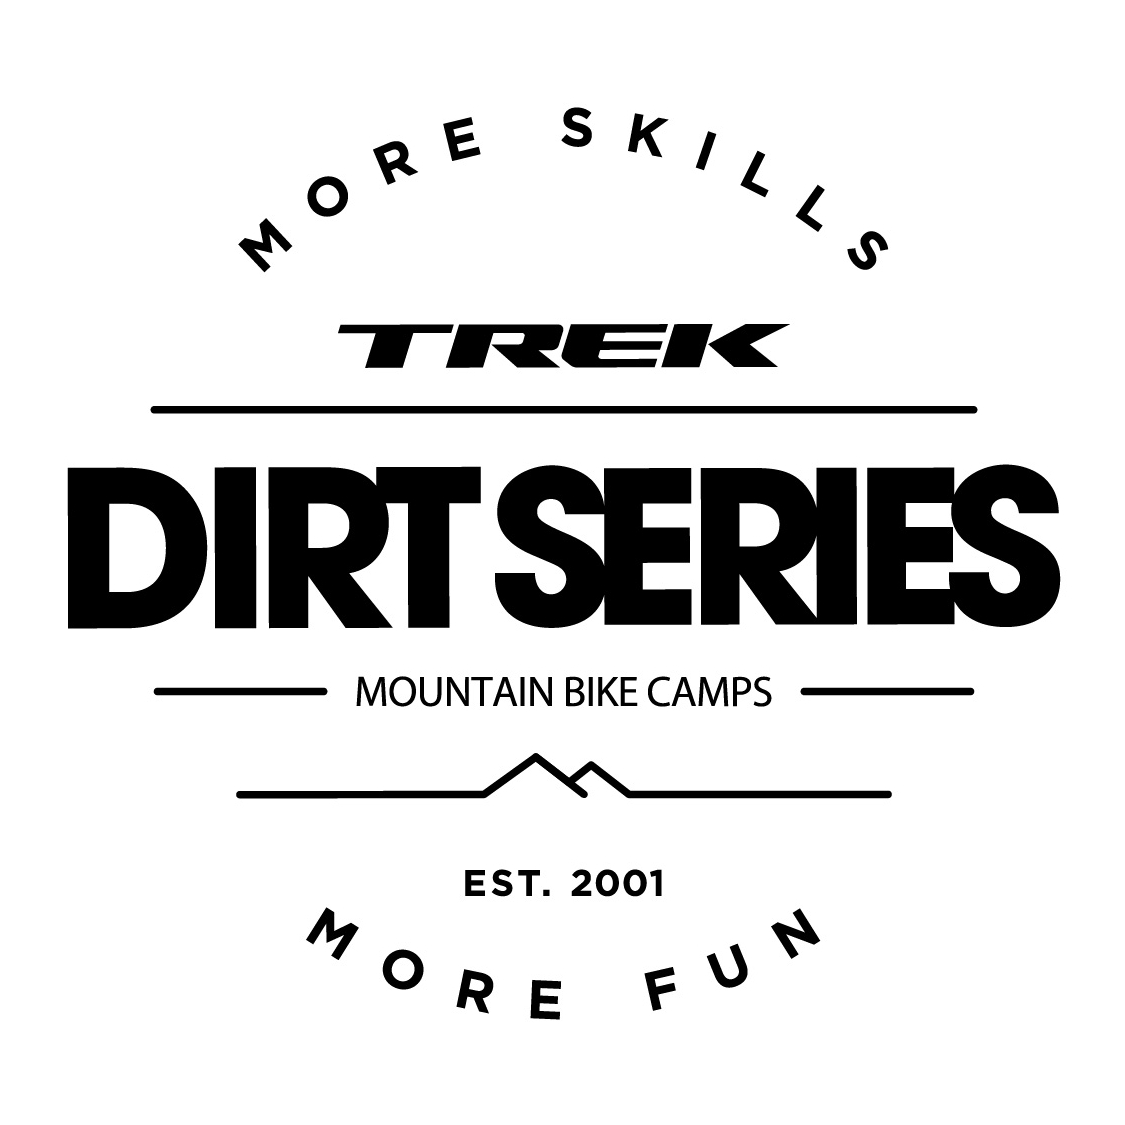 Dirt Series Mountain Bike Camp - Hood River, OR